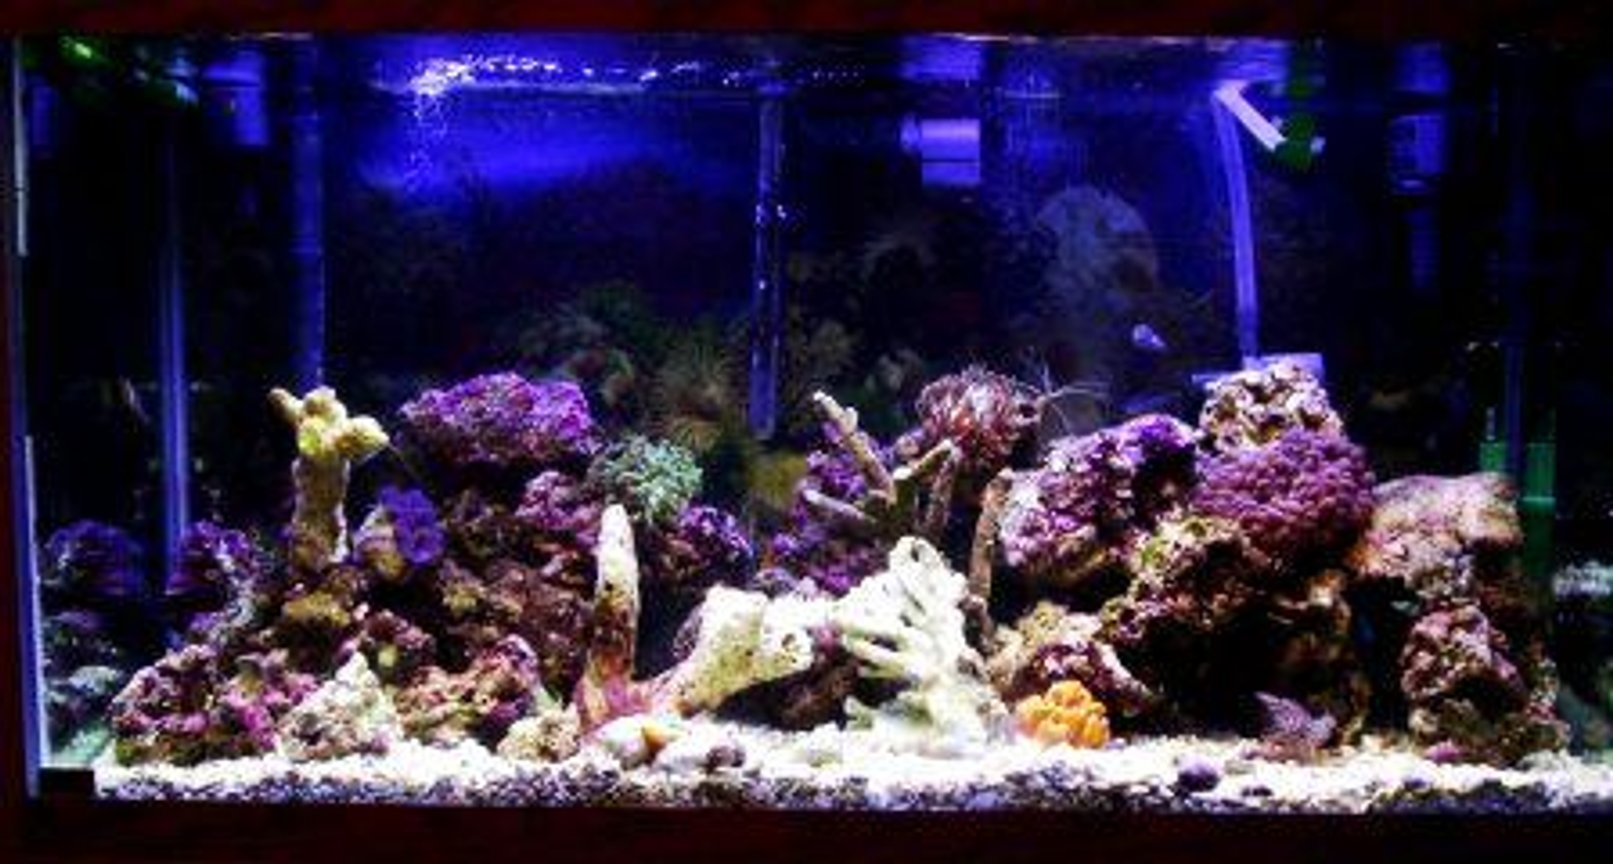 90 gallons reef tank (mostly live coral and fish) - 90 gal reef tank, 320 watt 50/50 Smart Lite System, eheim professional II filter. Protein Skimmer, Uv Light, Several Power Heads 11-14-05